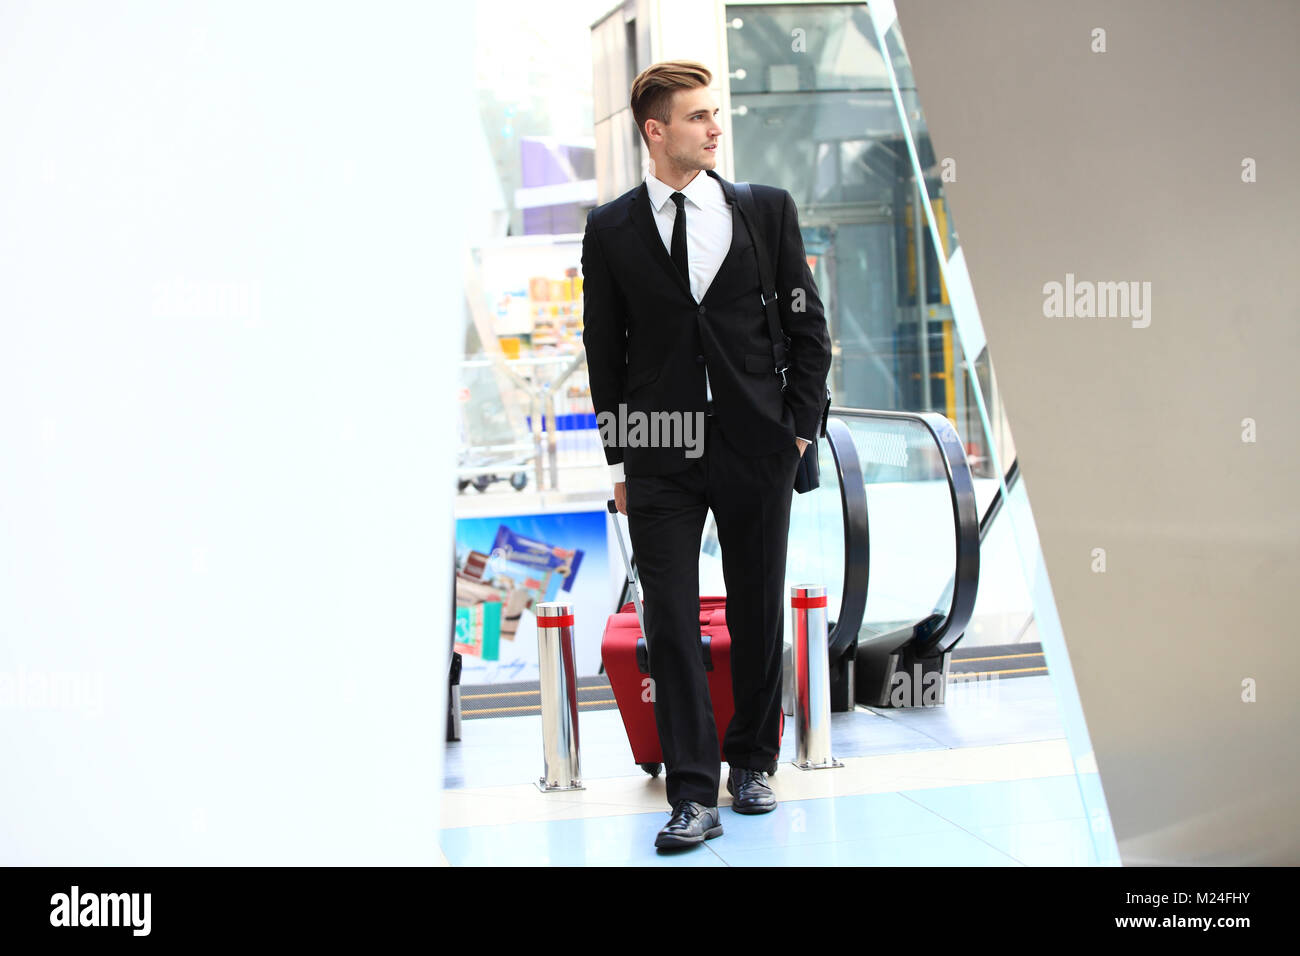 Business man at airport with suitcase - Stock Image